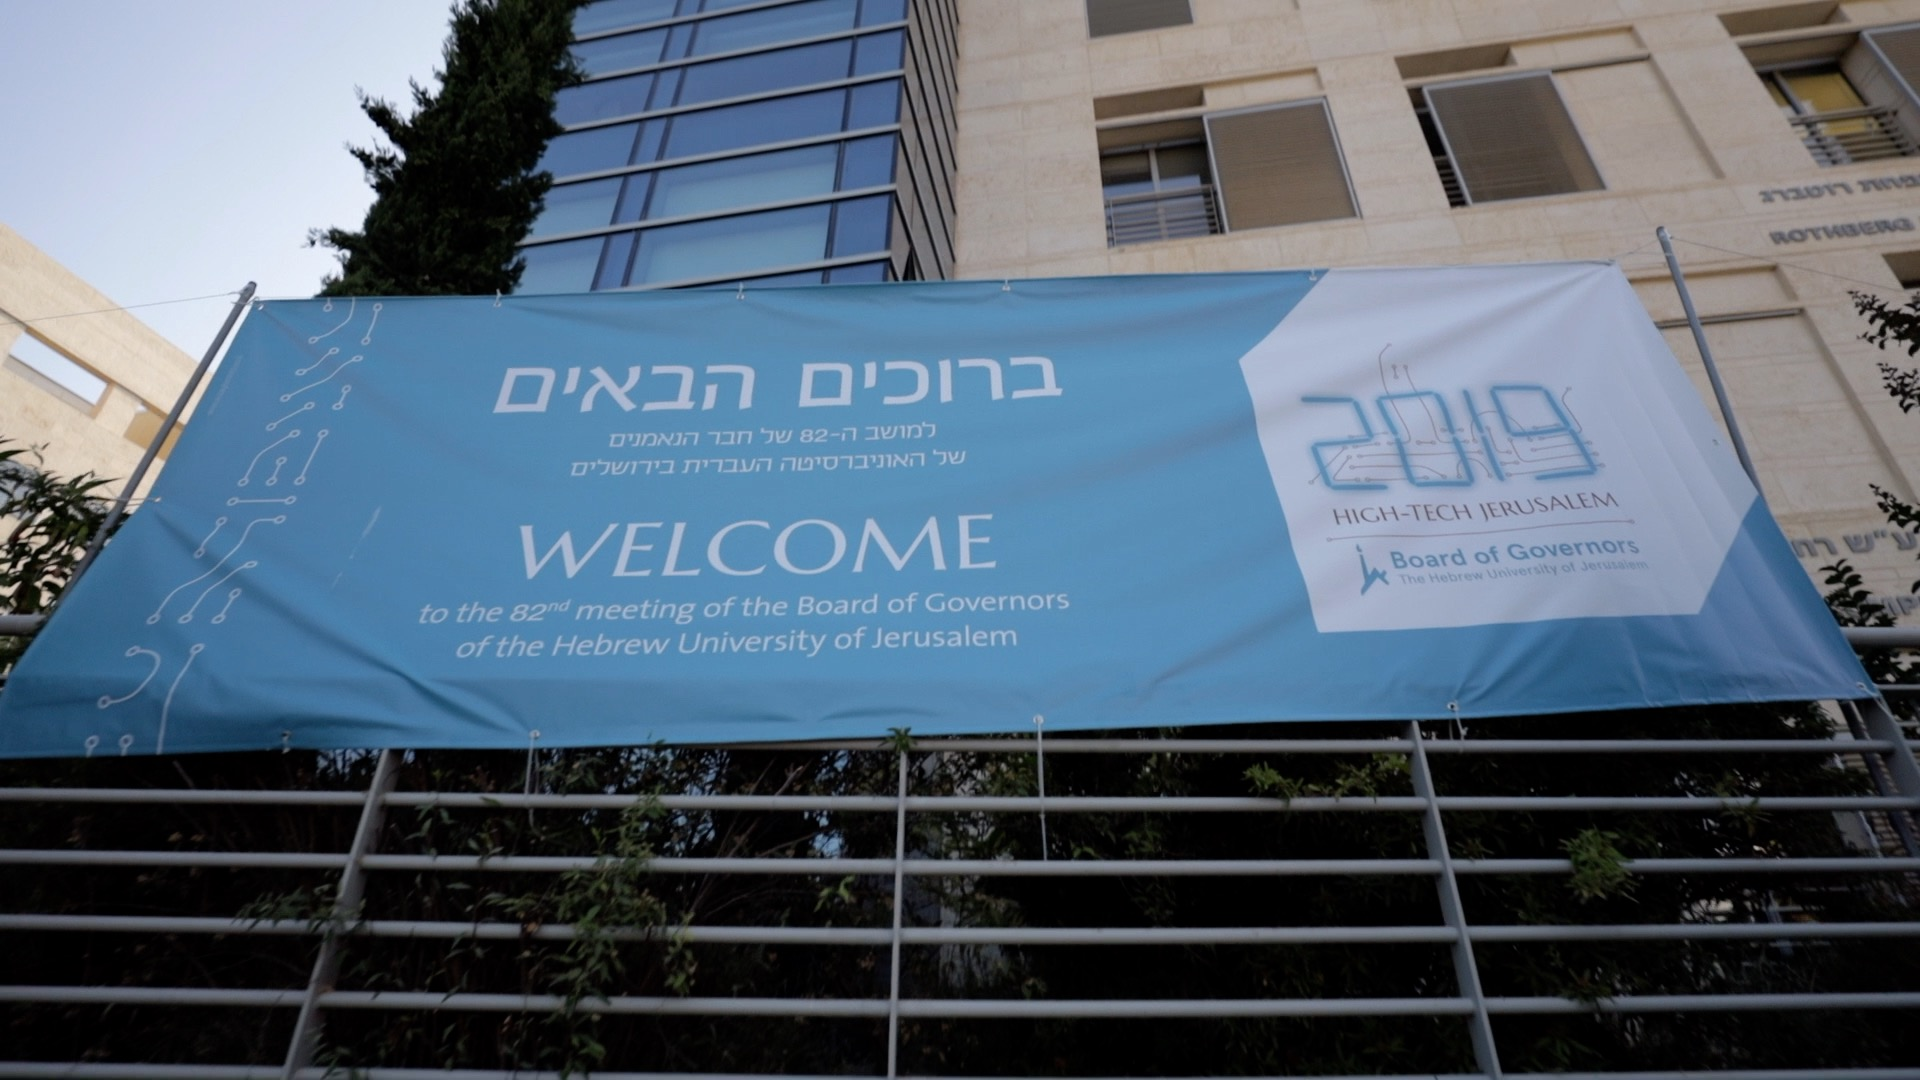 Hebrew University Board of Governors 2019